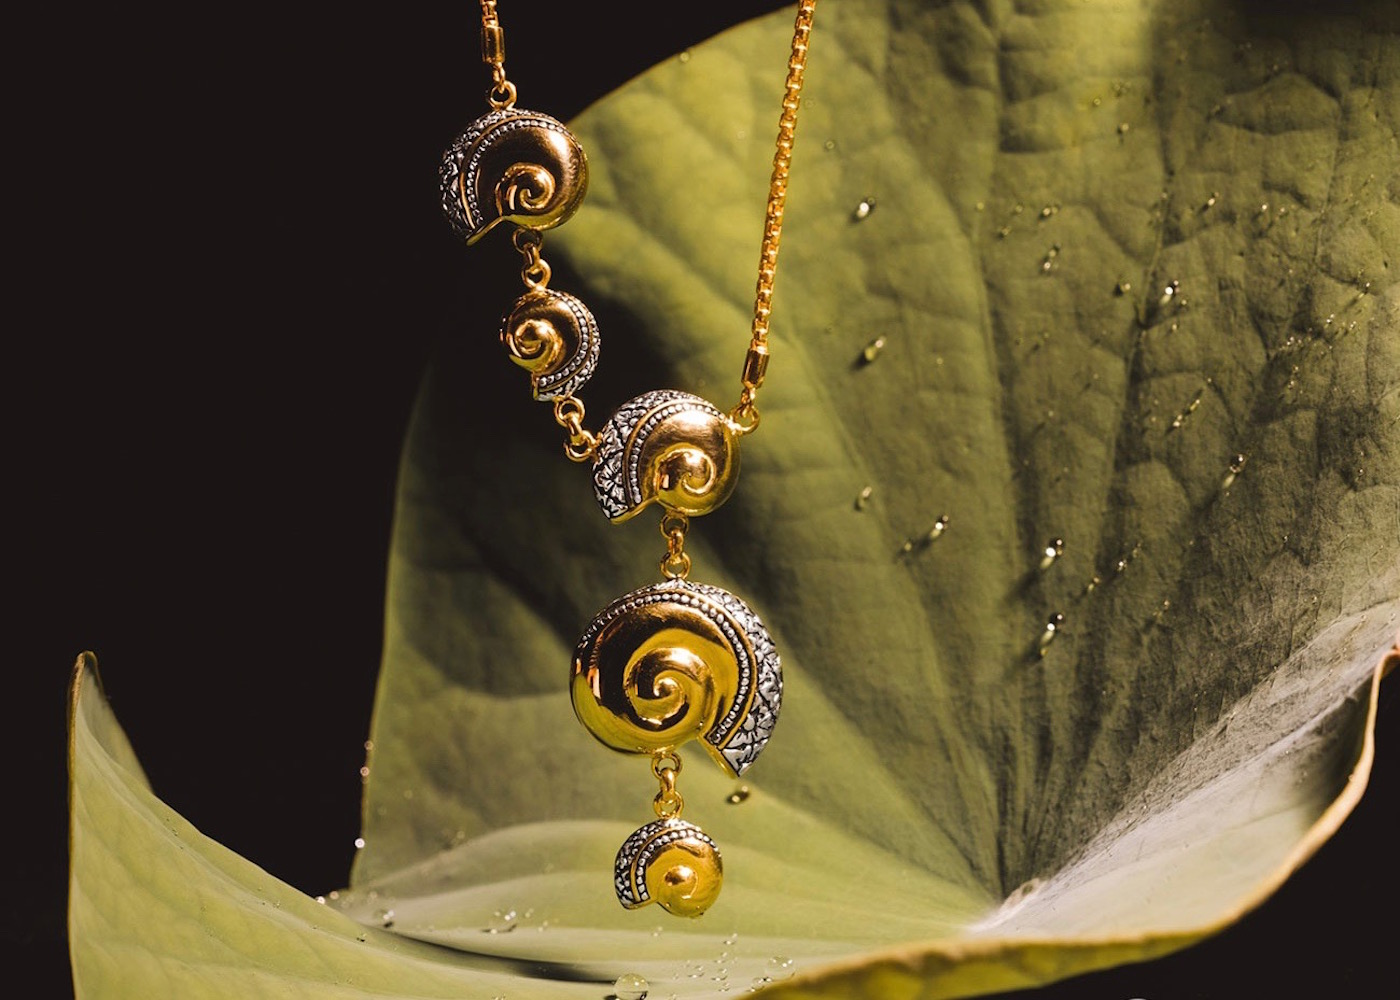 Sunaka gold and silver cultural jewellery in Bali, Indonesia